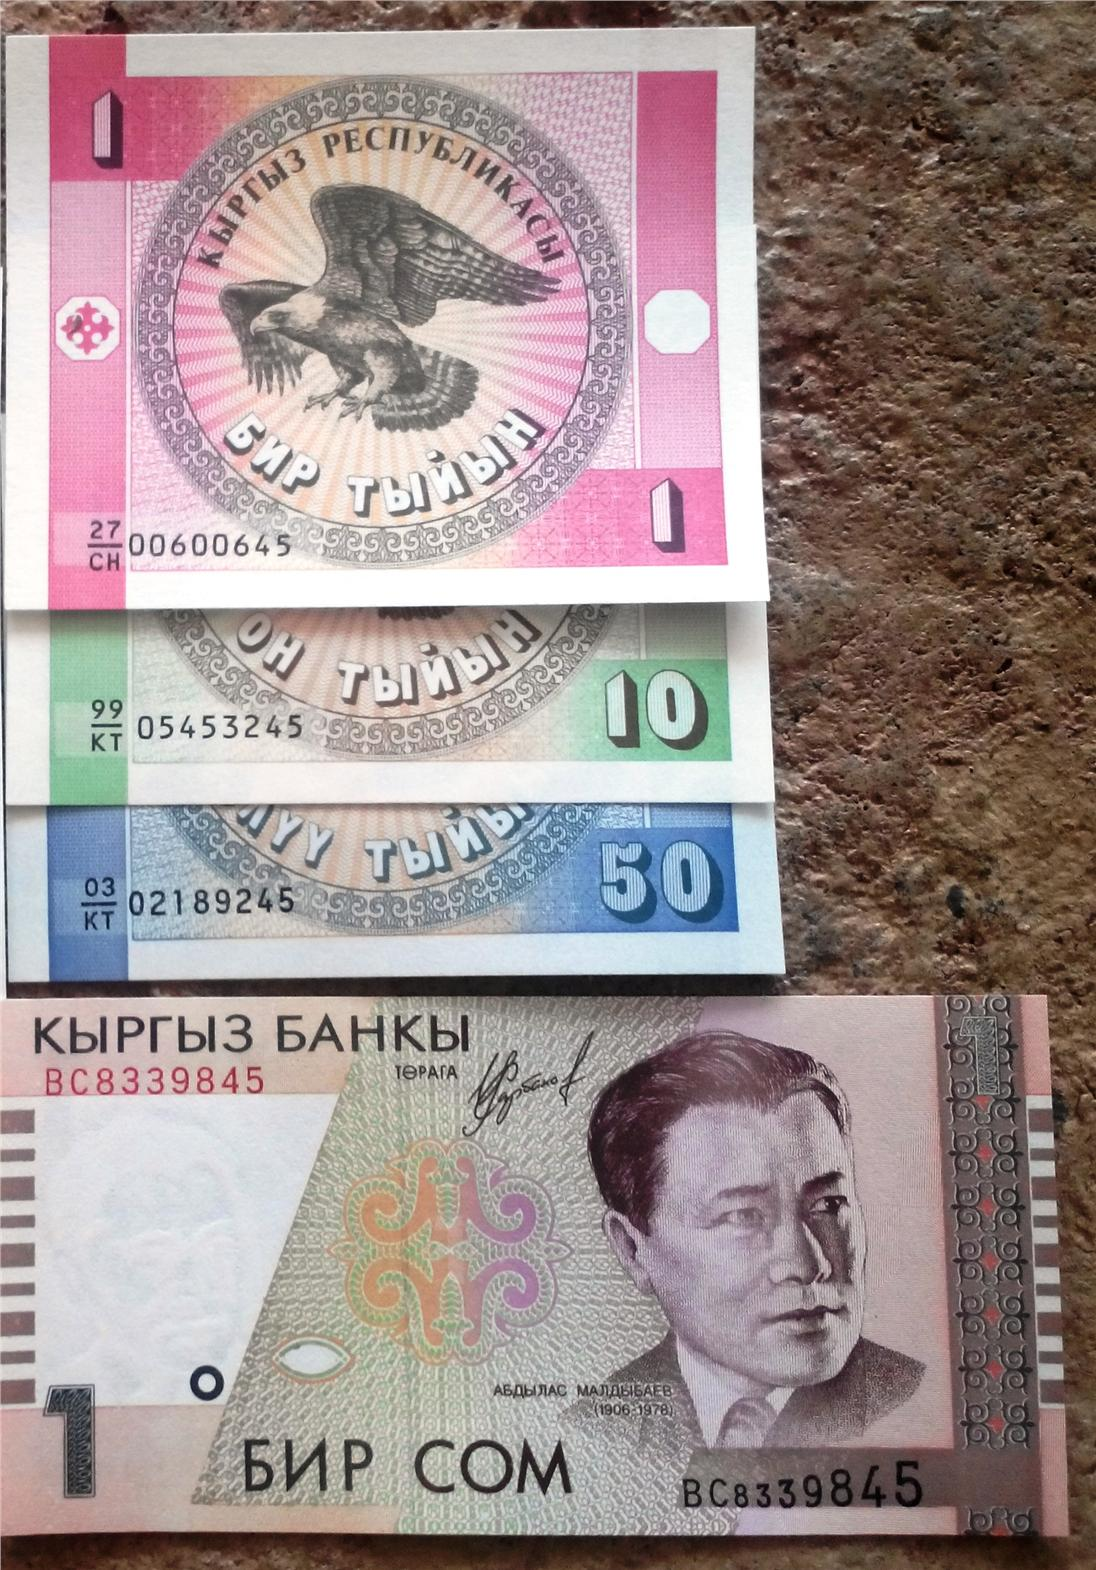 Kyrgyzstan banknotes 4 pcs last 2 series number same unc